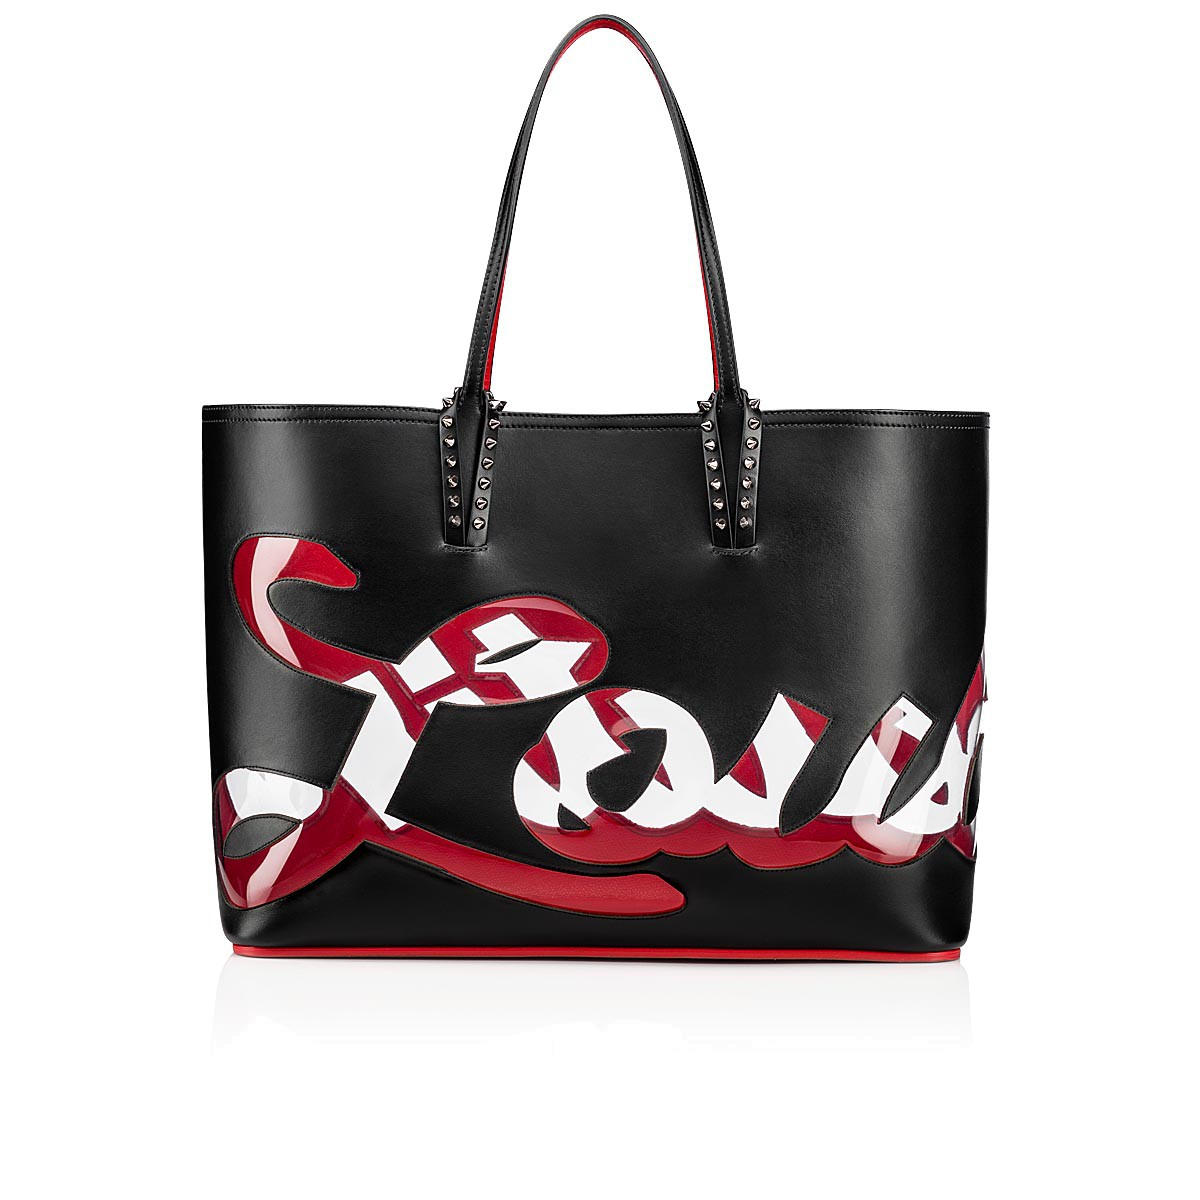 Cabata Tote Bag Black Calfskin Handbags Christian Louboutin